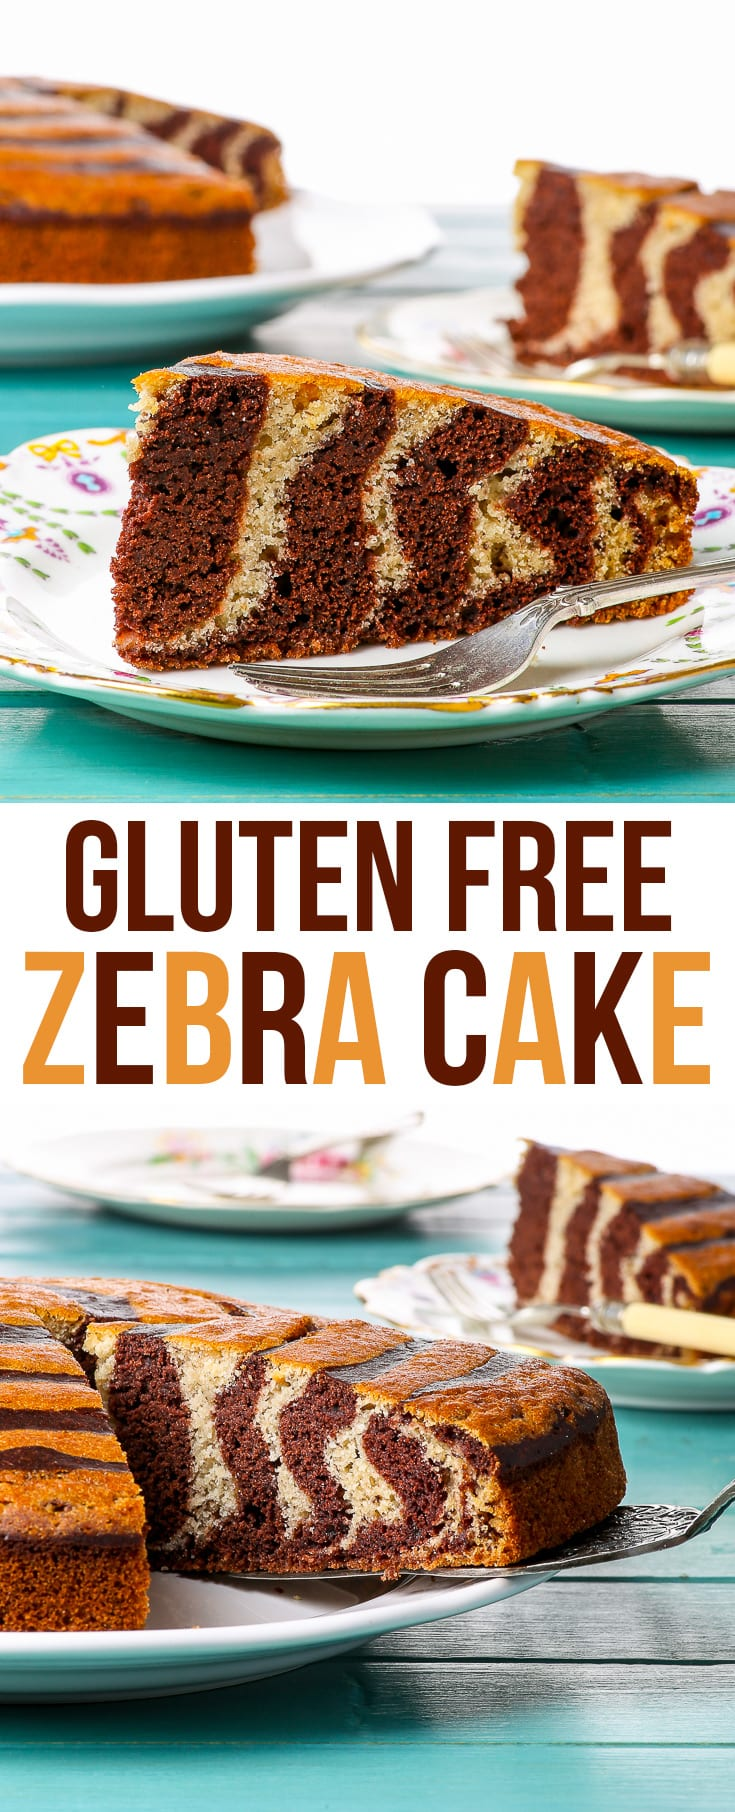 Gluten Free Zebra Cake - This fun and delicious gluten free zebra cake is super easy to make and bound to impress just about anyone. Chocolate and vanilla cake batters meet this delicious marbled cake. A perfect gluten free dessert on its own or frosted in buttercream, dusted with icing sugar, or smothered in chocolate ganache. Gluten free cake recipe. Cake ideas. Easy desserts. Easy cake recipes. #glutenfree #cake #dessert #recipe #food